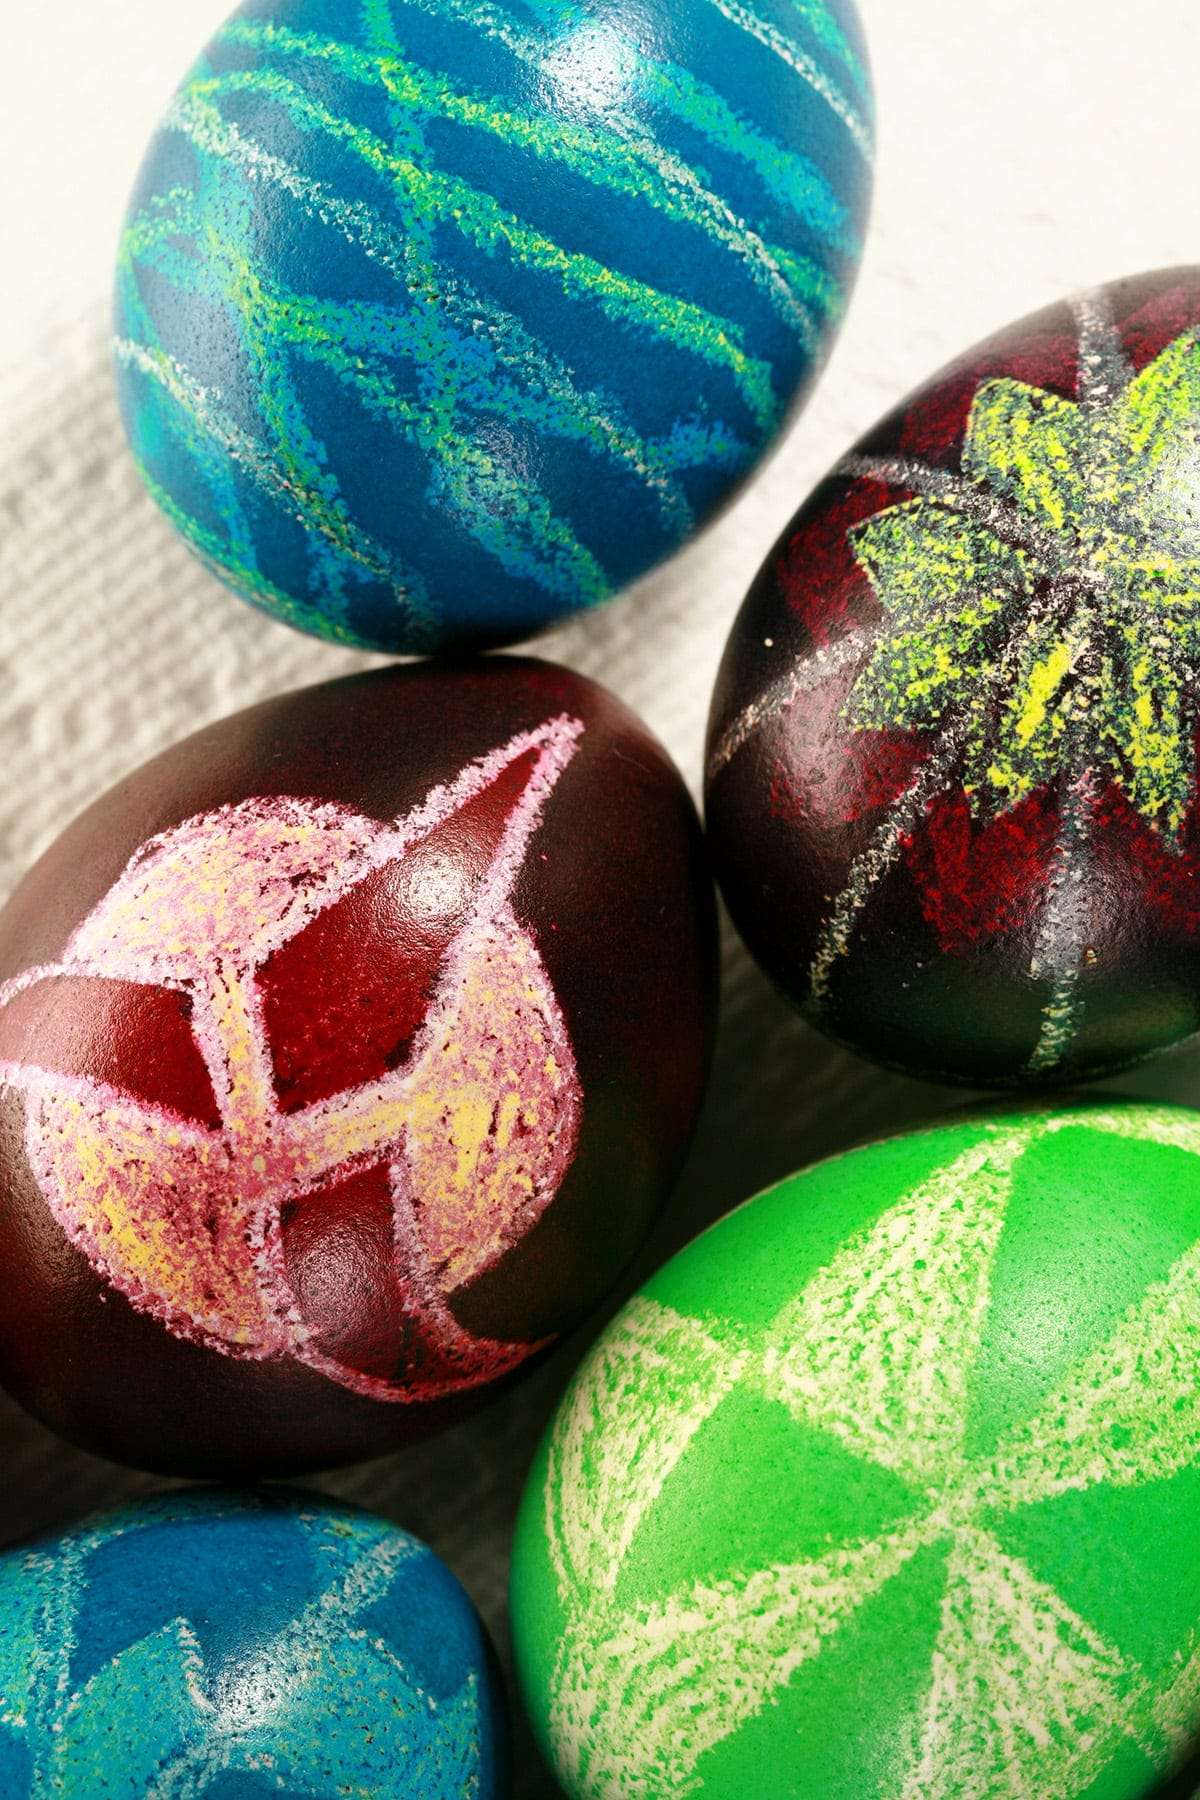 A close up view of several brightly coloured pysanky easter eggs. One has a Klingon symbol on it.